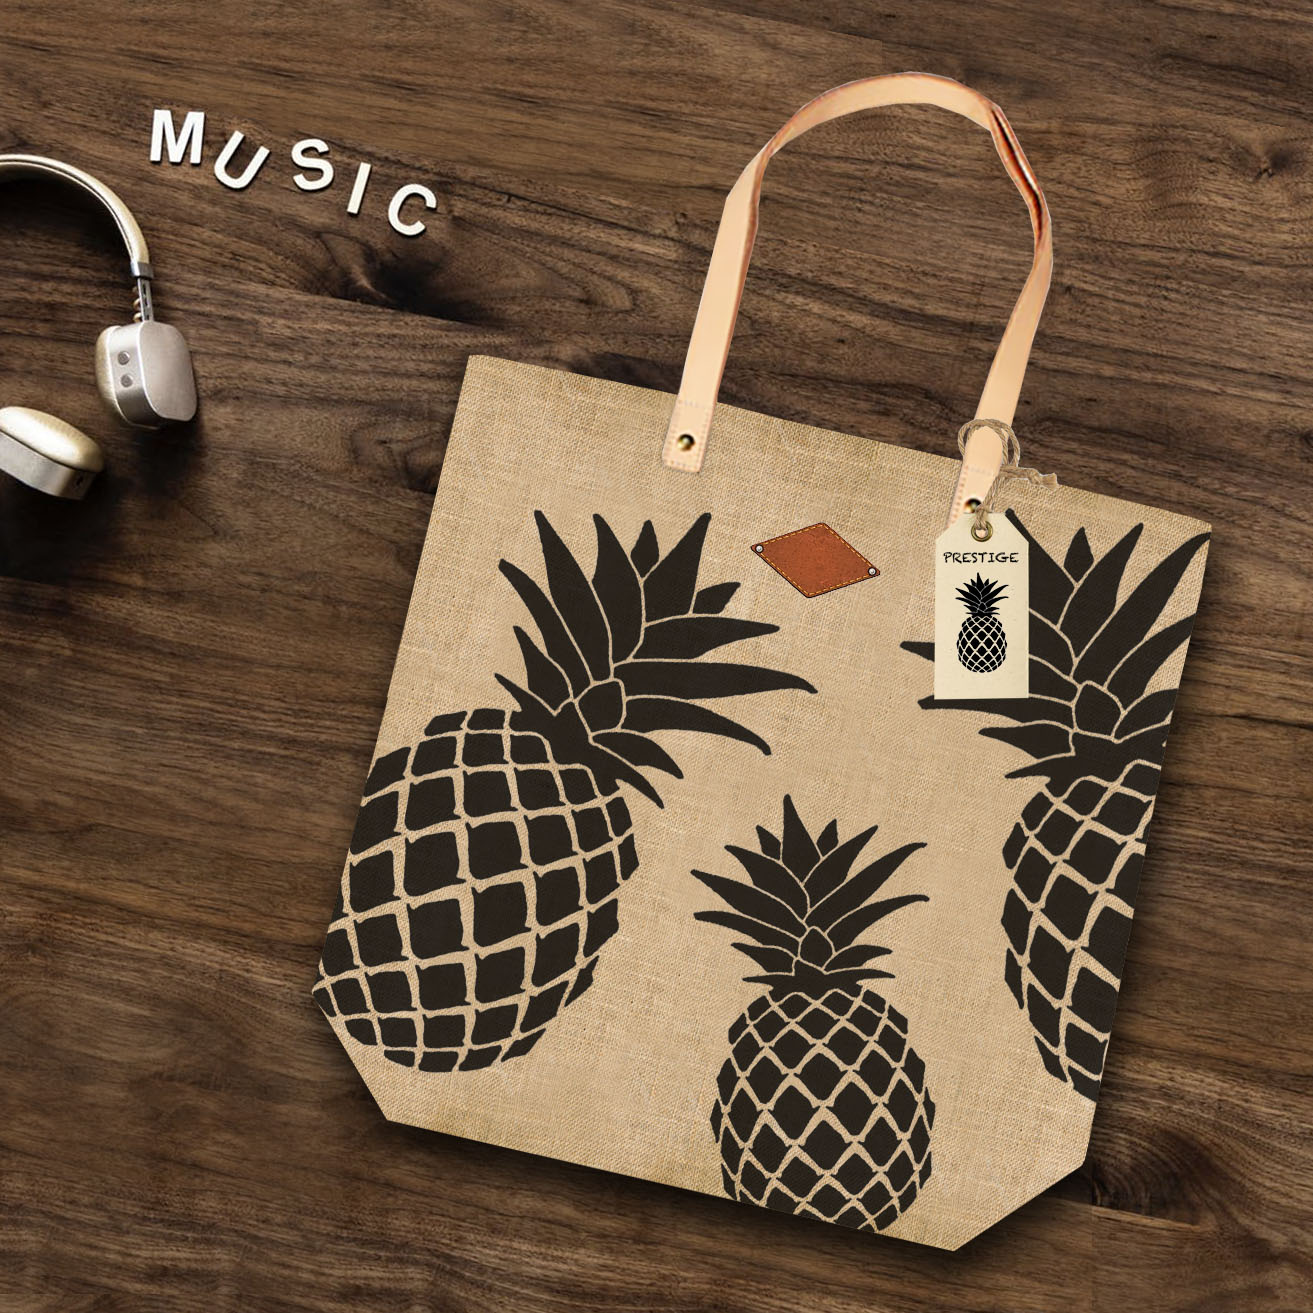 Leather Handle Tote Bag With Pinele Print